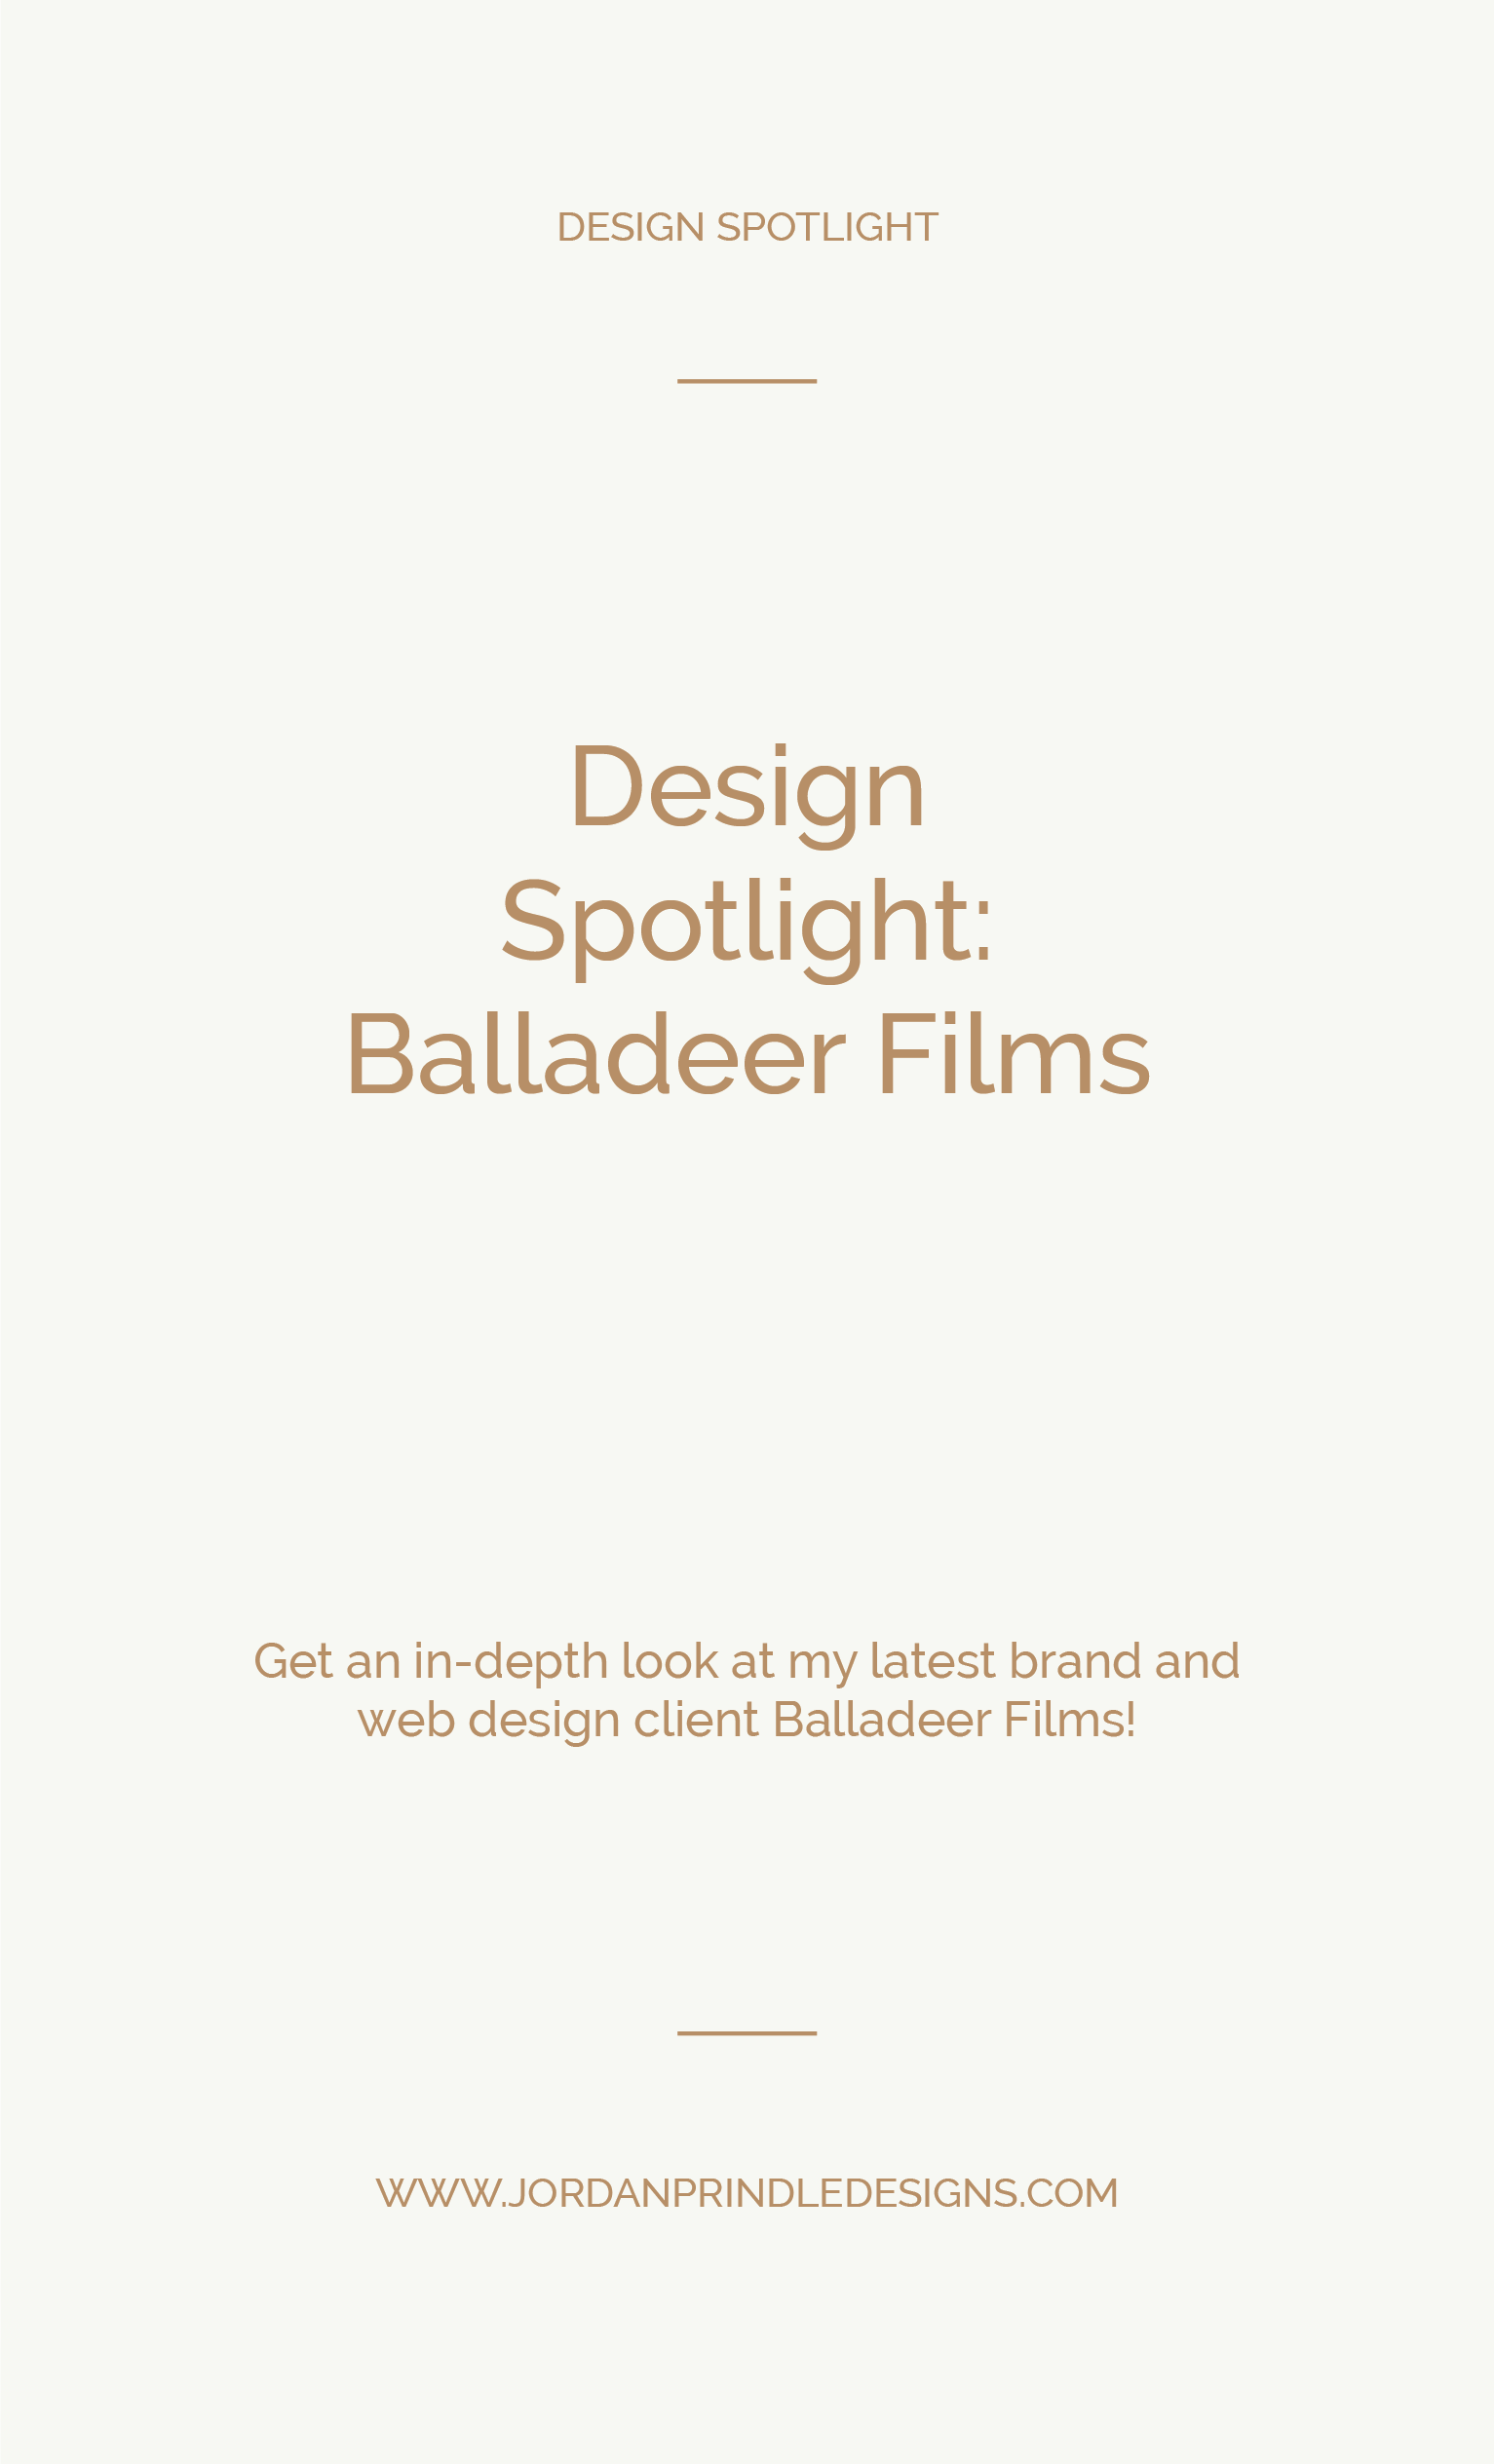 Design Spotlight Balladeer Films | A new brand and web design project completed for Balladeer Films by www.jordanprindledesigns.com #squarespacedesign #branddesigner #newwebdesign